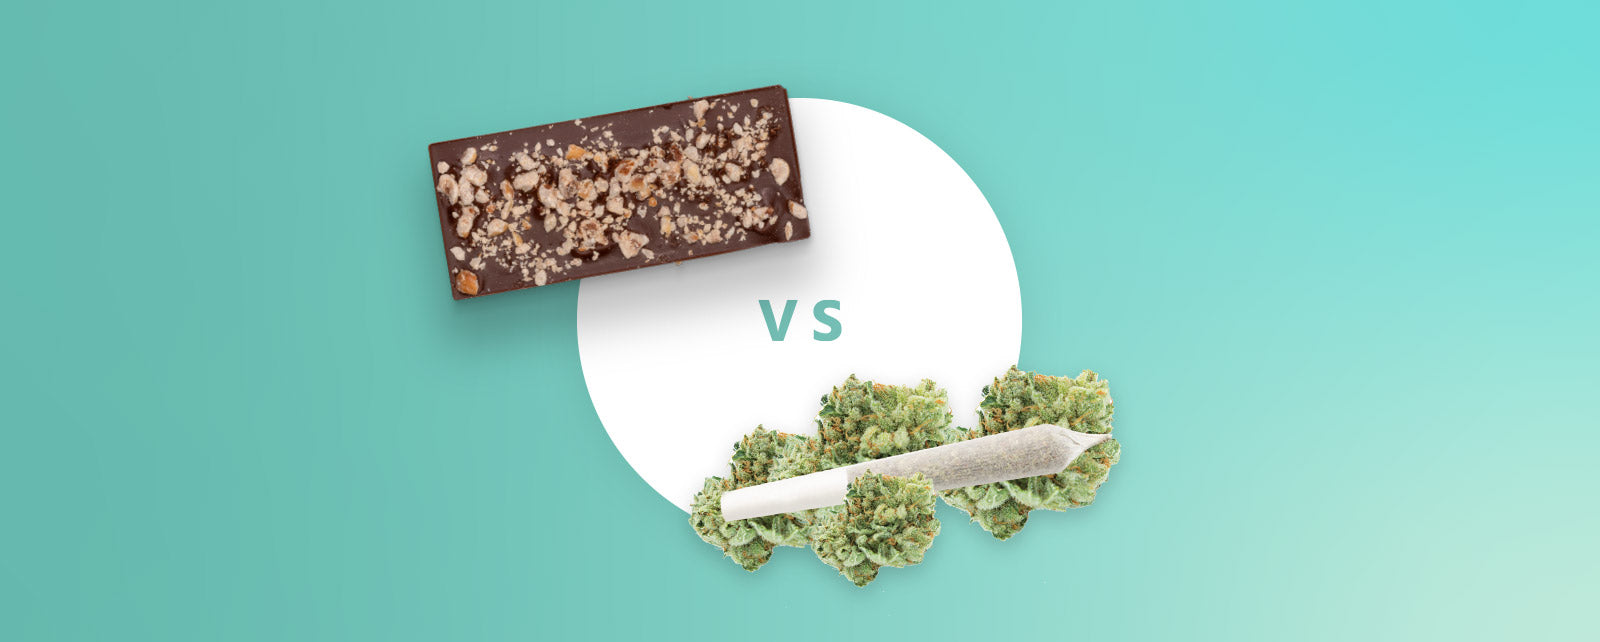 Ingestion versus inhalation: What are the effects of cannabis edibles?